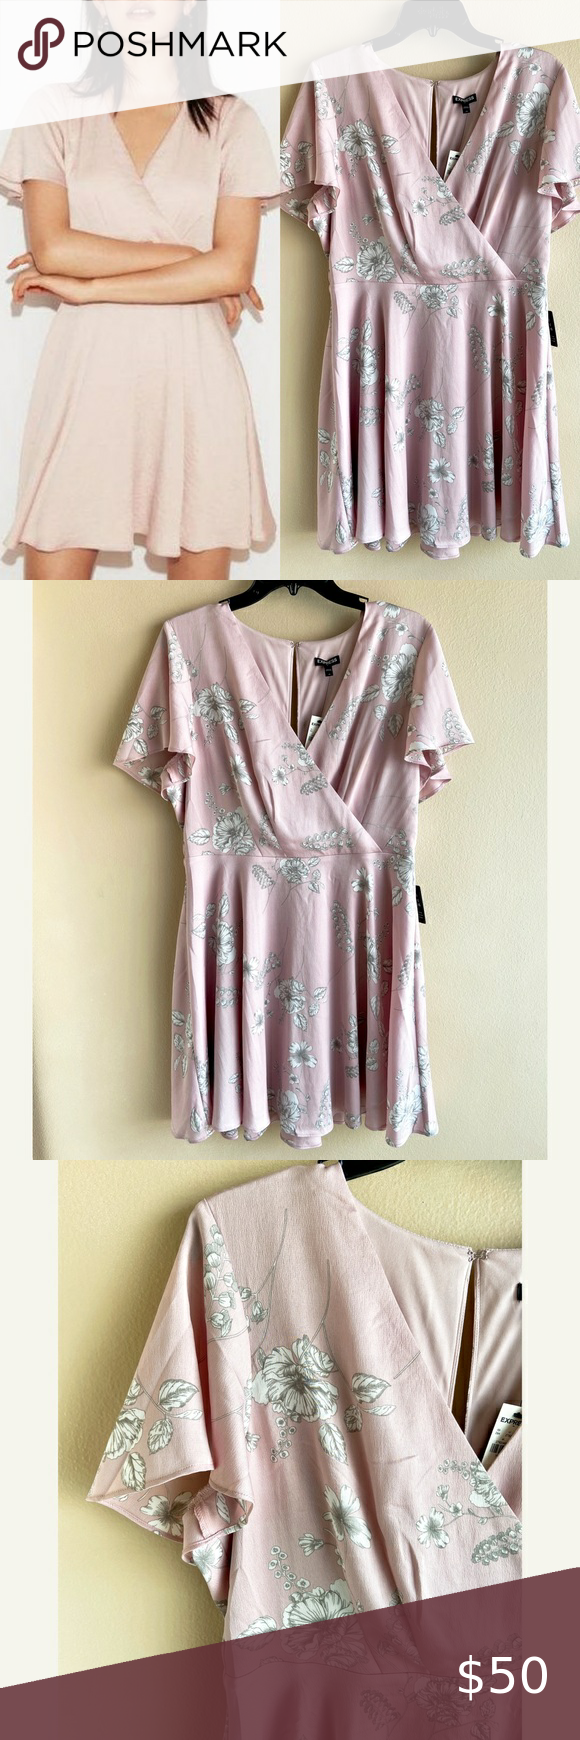 •NWT• [Express] Pink Satin Floral Mini Dress